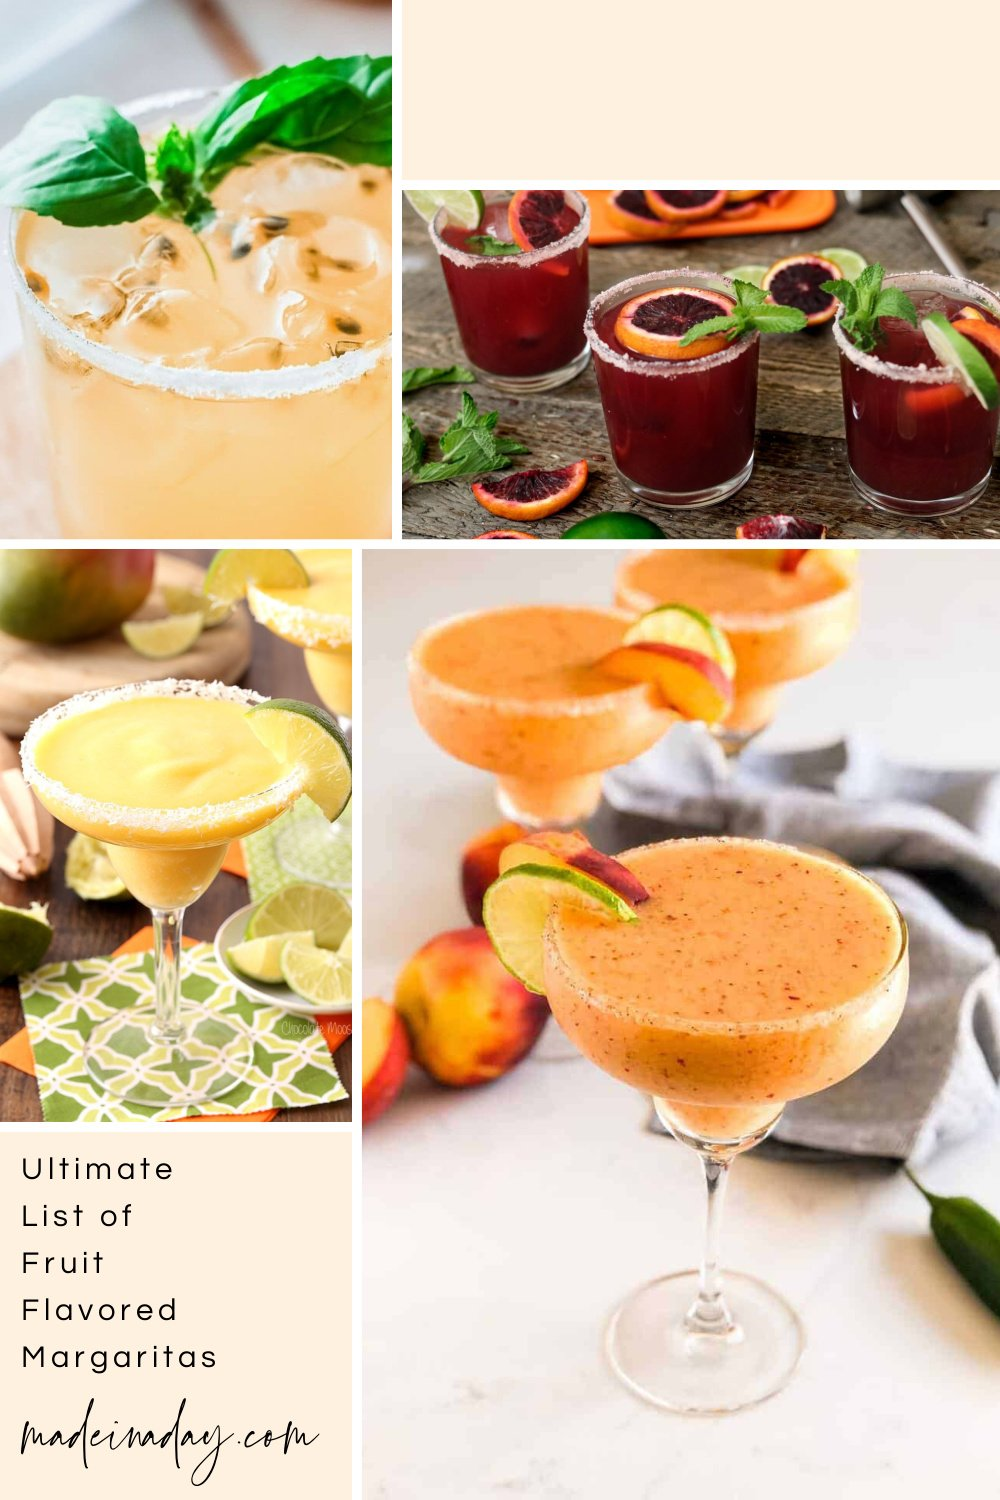 Ultimate Fruit Flavored Margaritas List